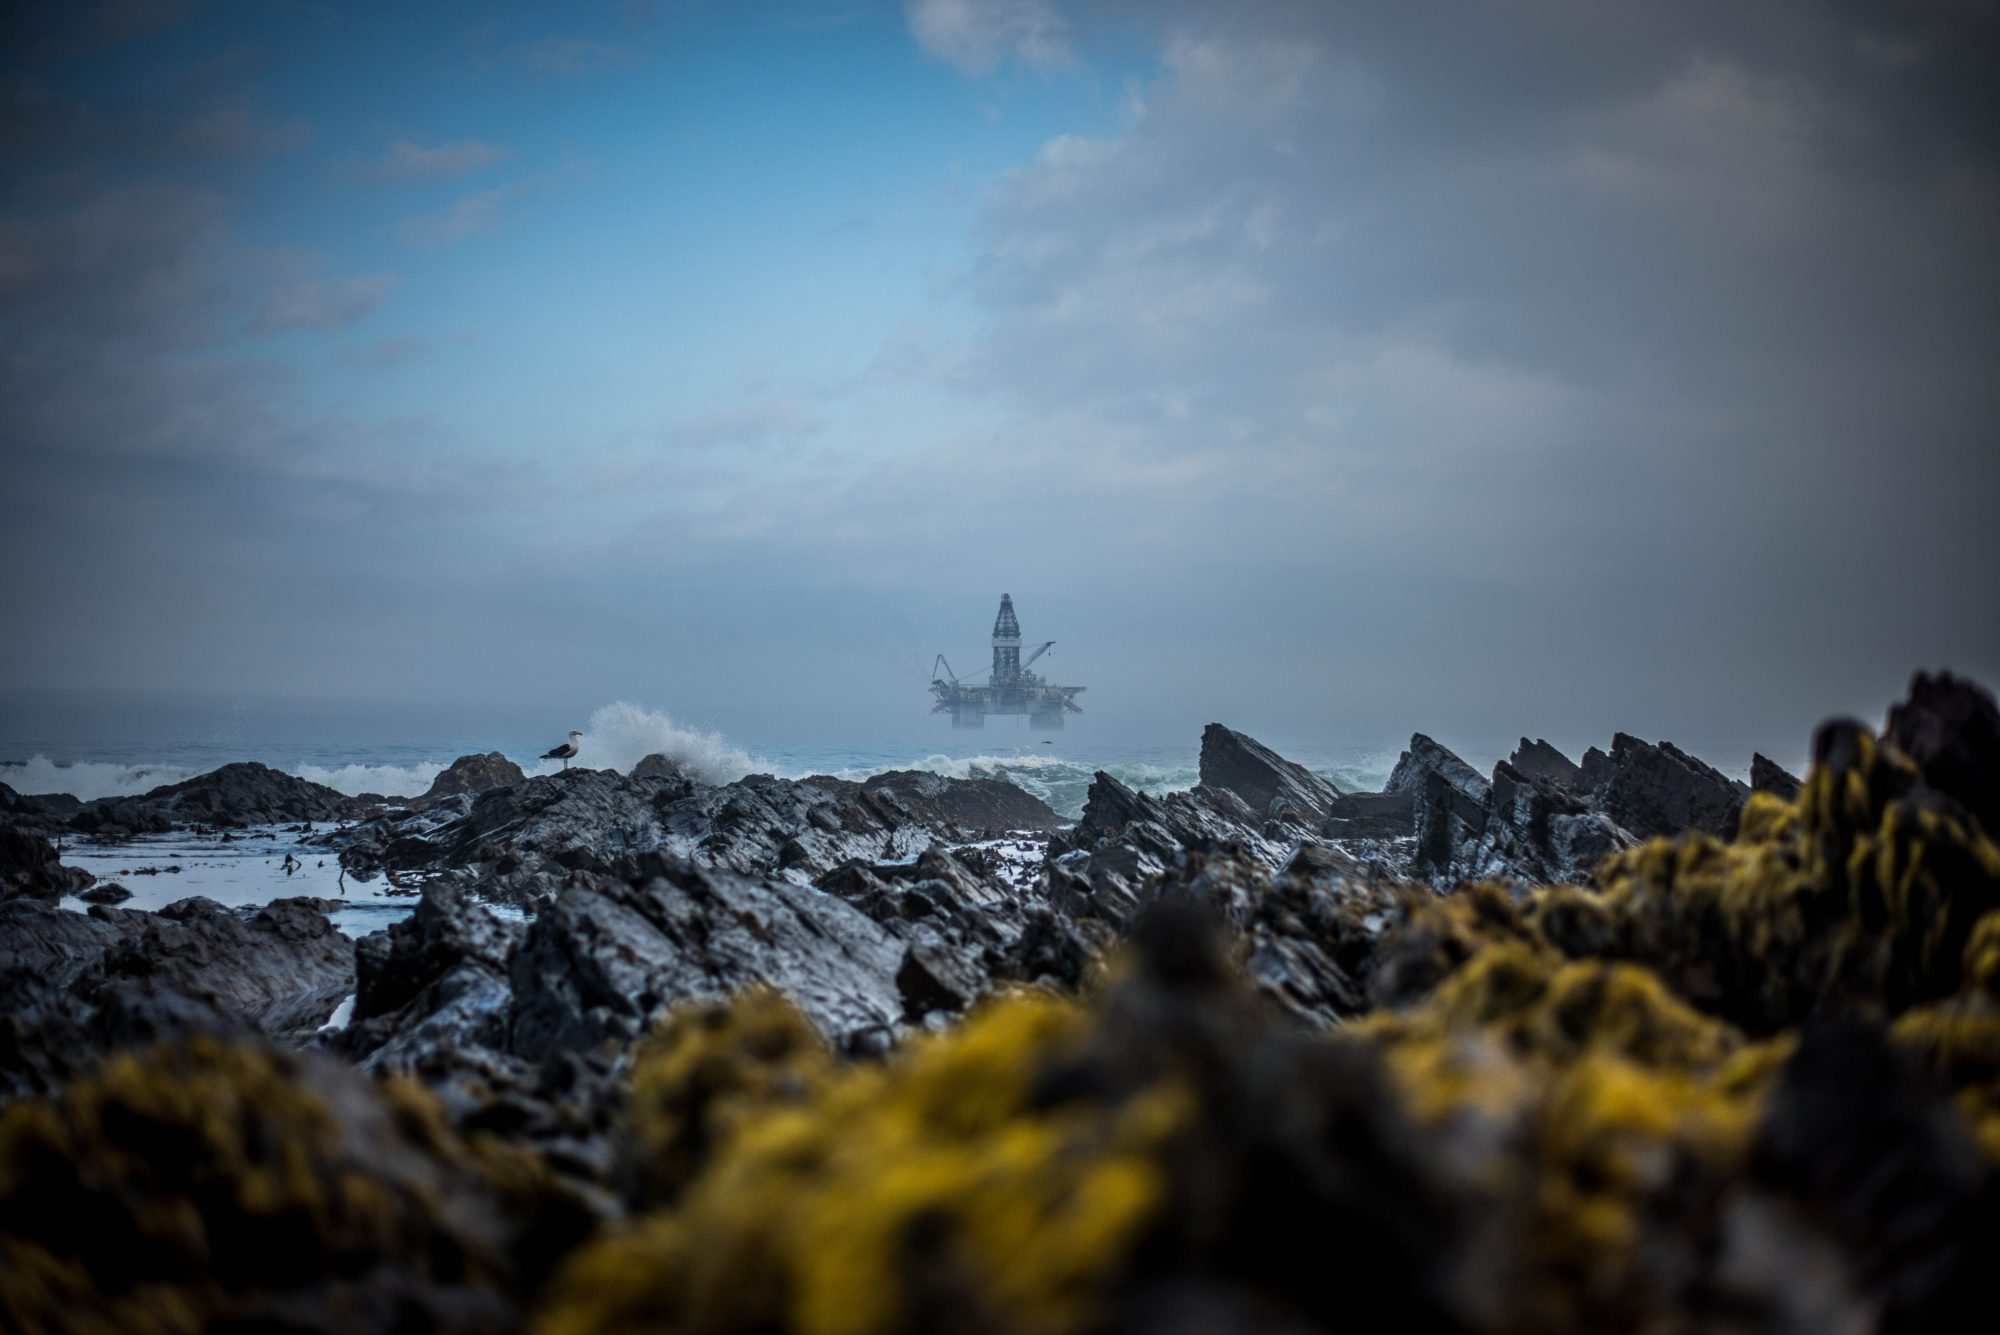 clyde-thomas South Africa oil rig CCS-695470-unsplash